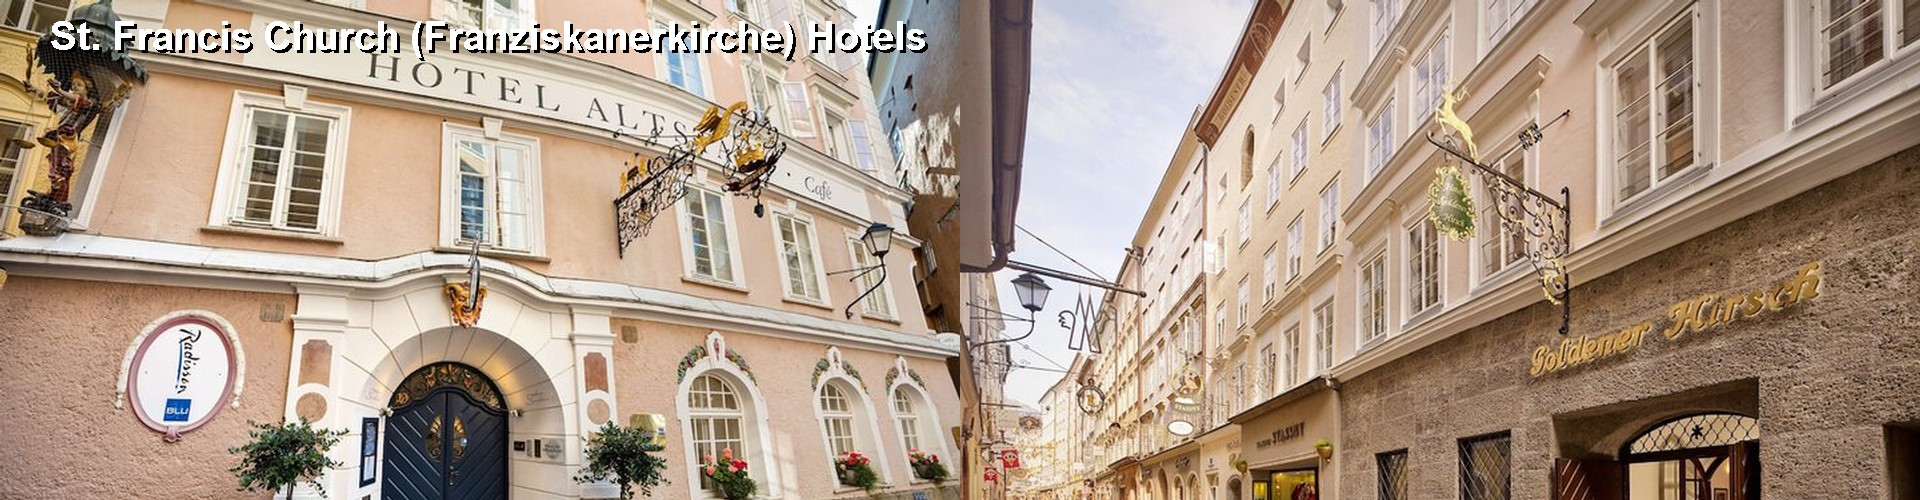 5 Best Hotels near St. Francis Church (Franziskanerkirche)